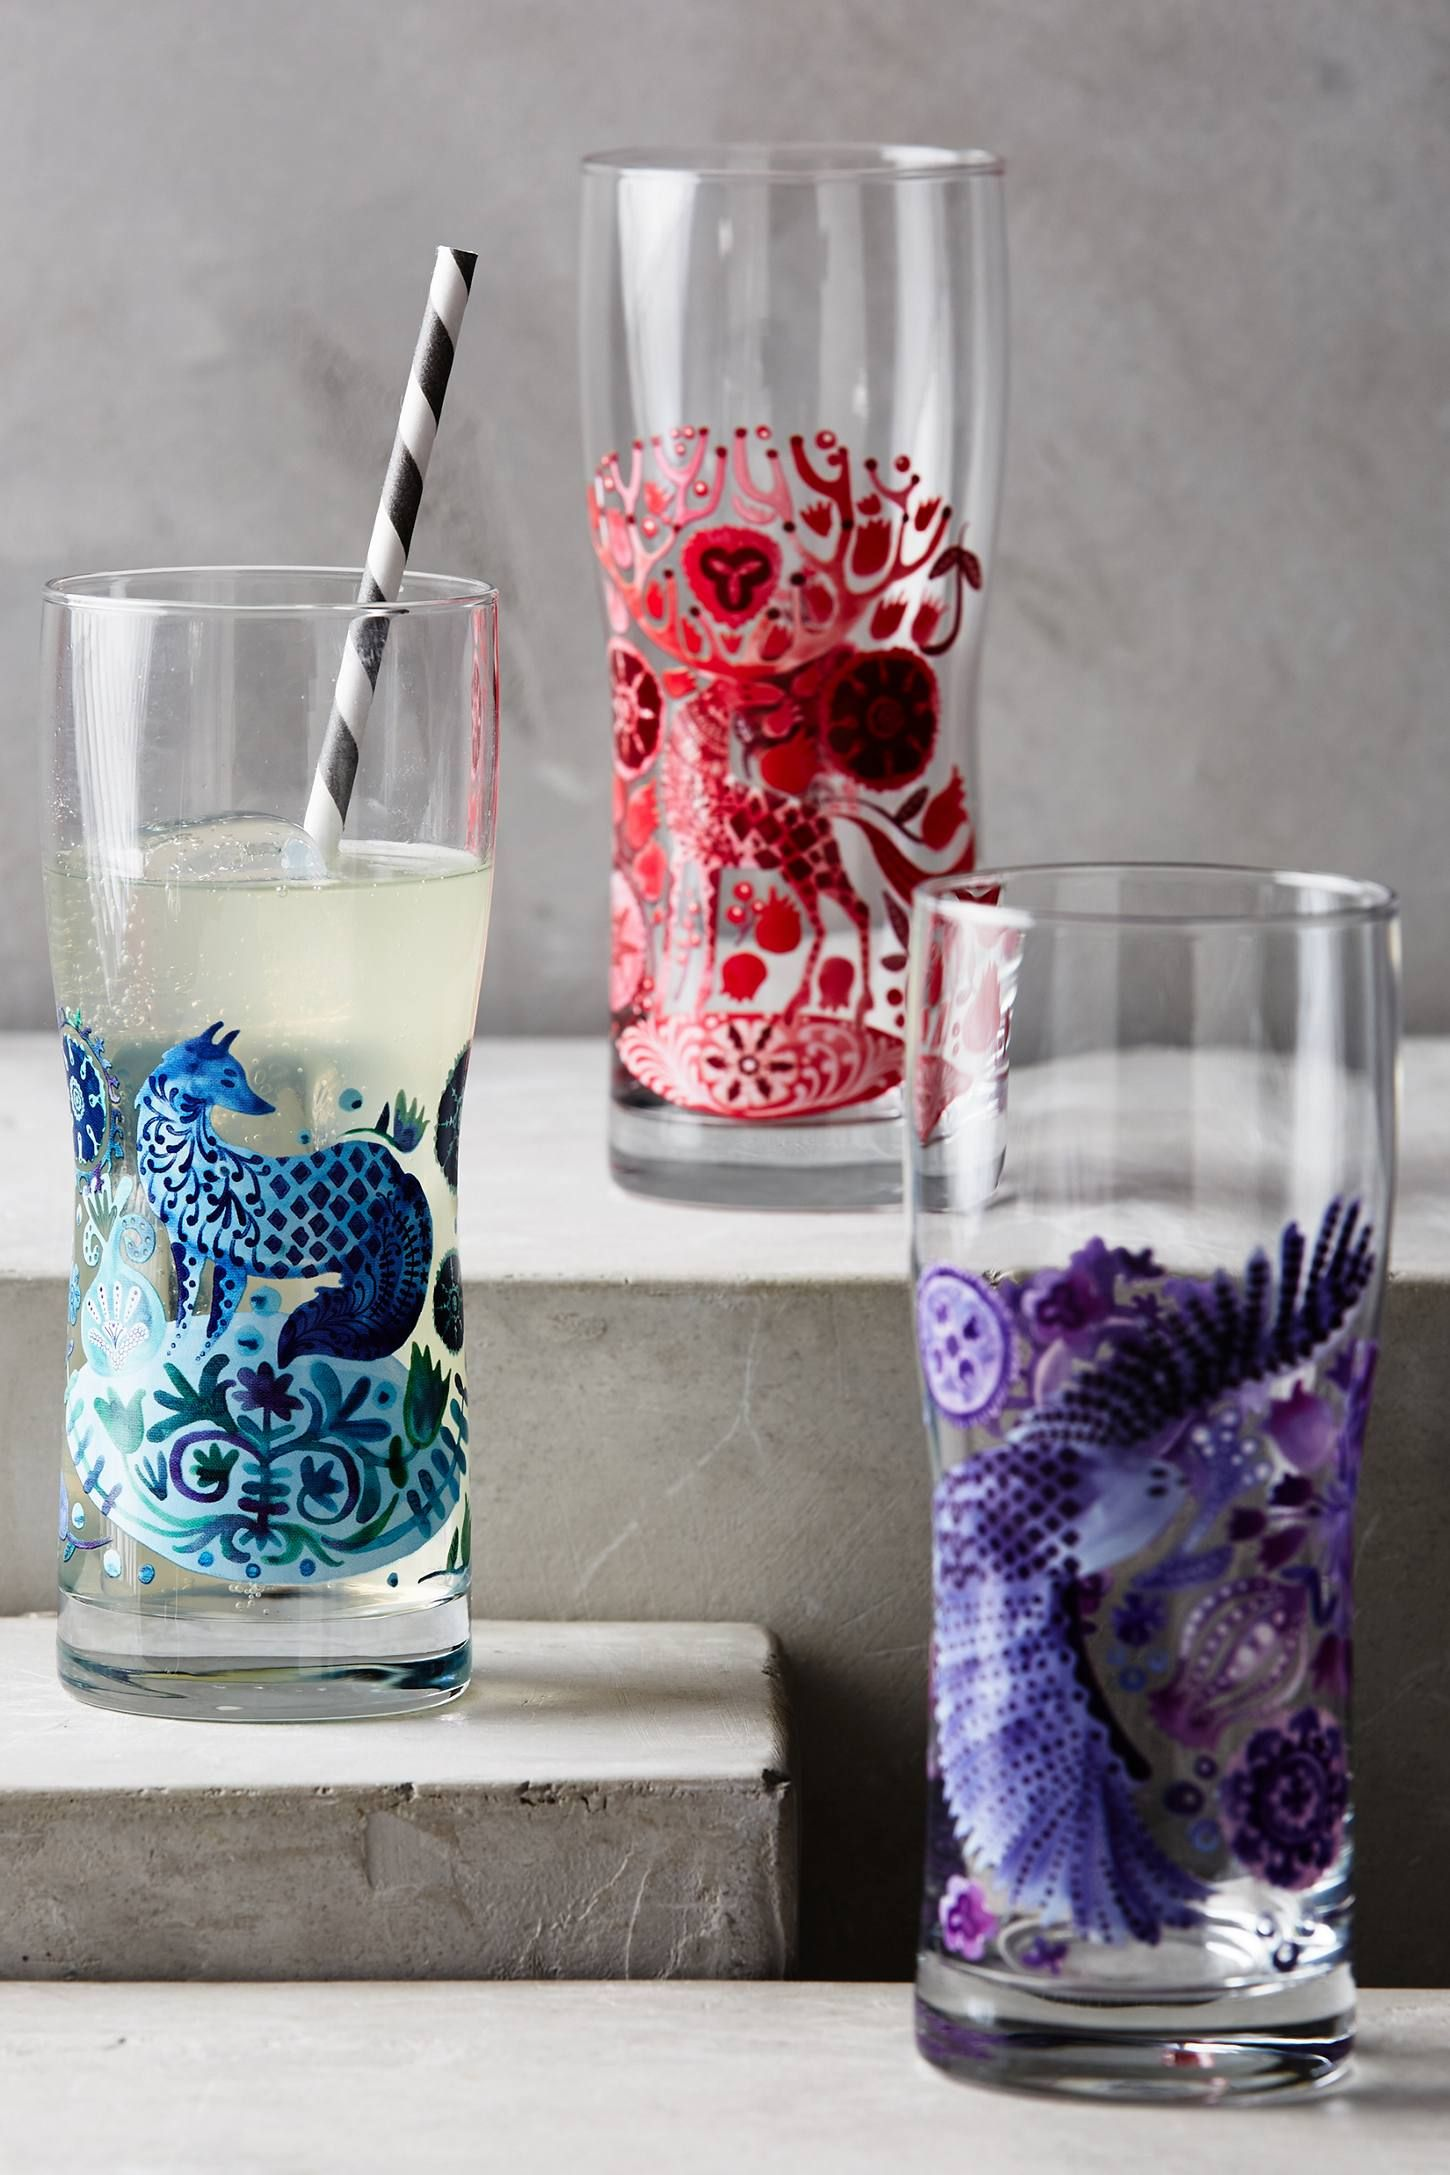 Norse Glass - anthropologie.com